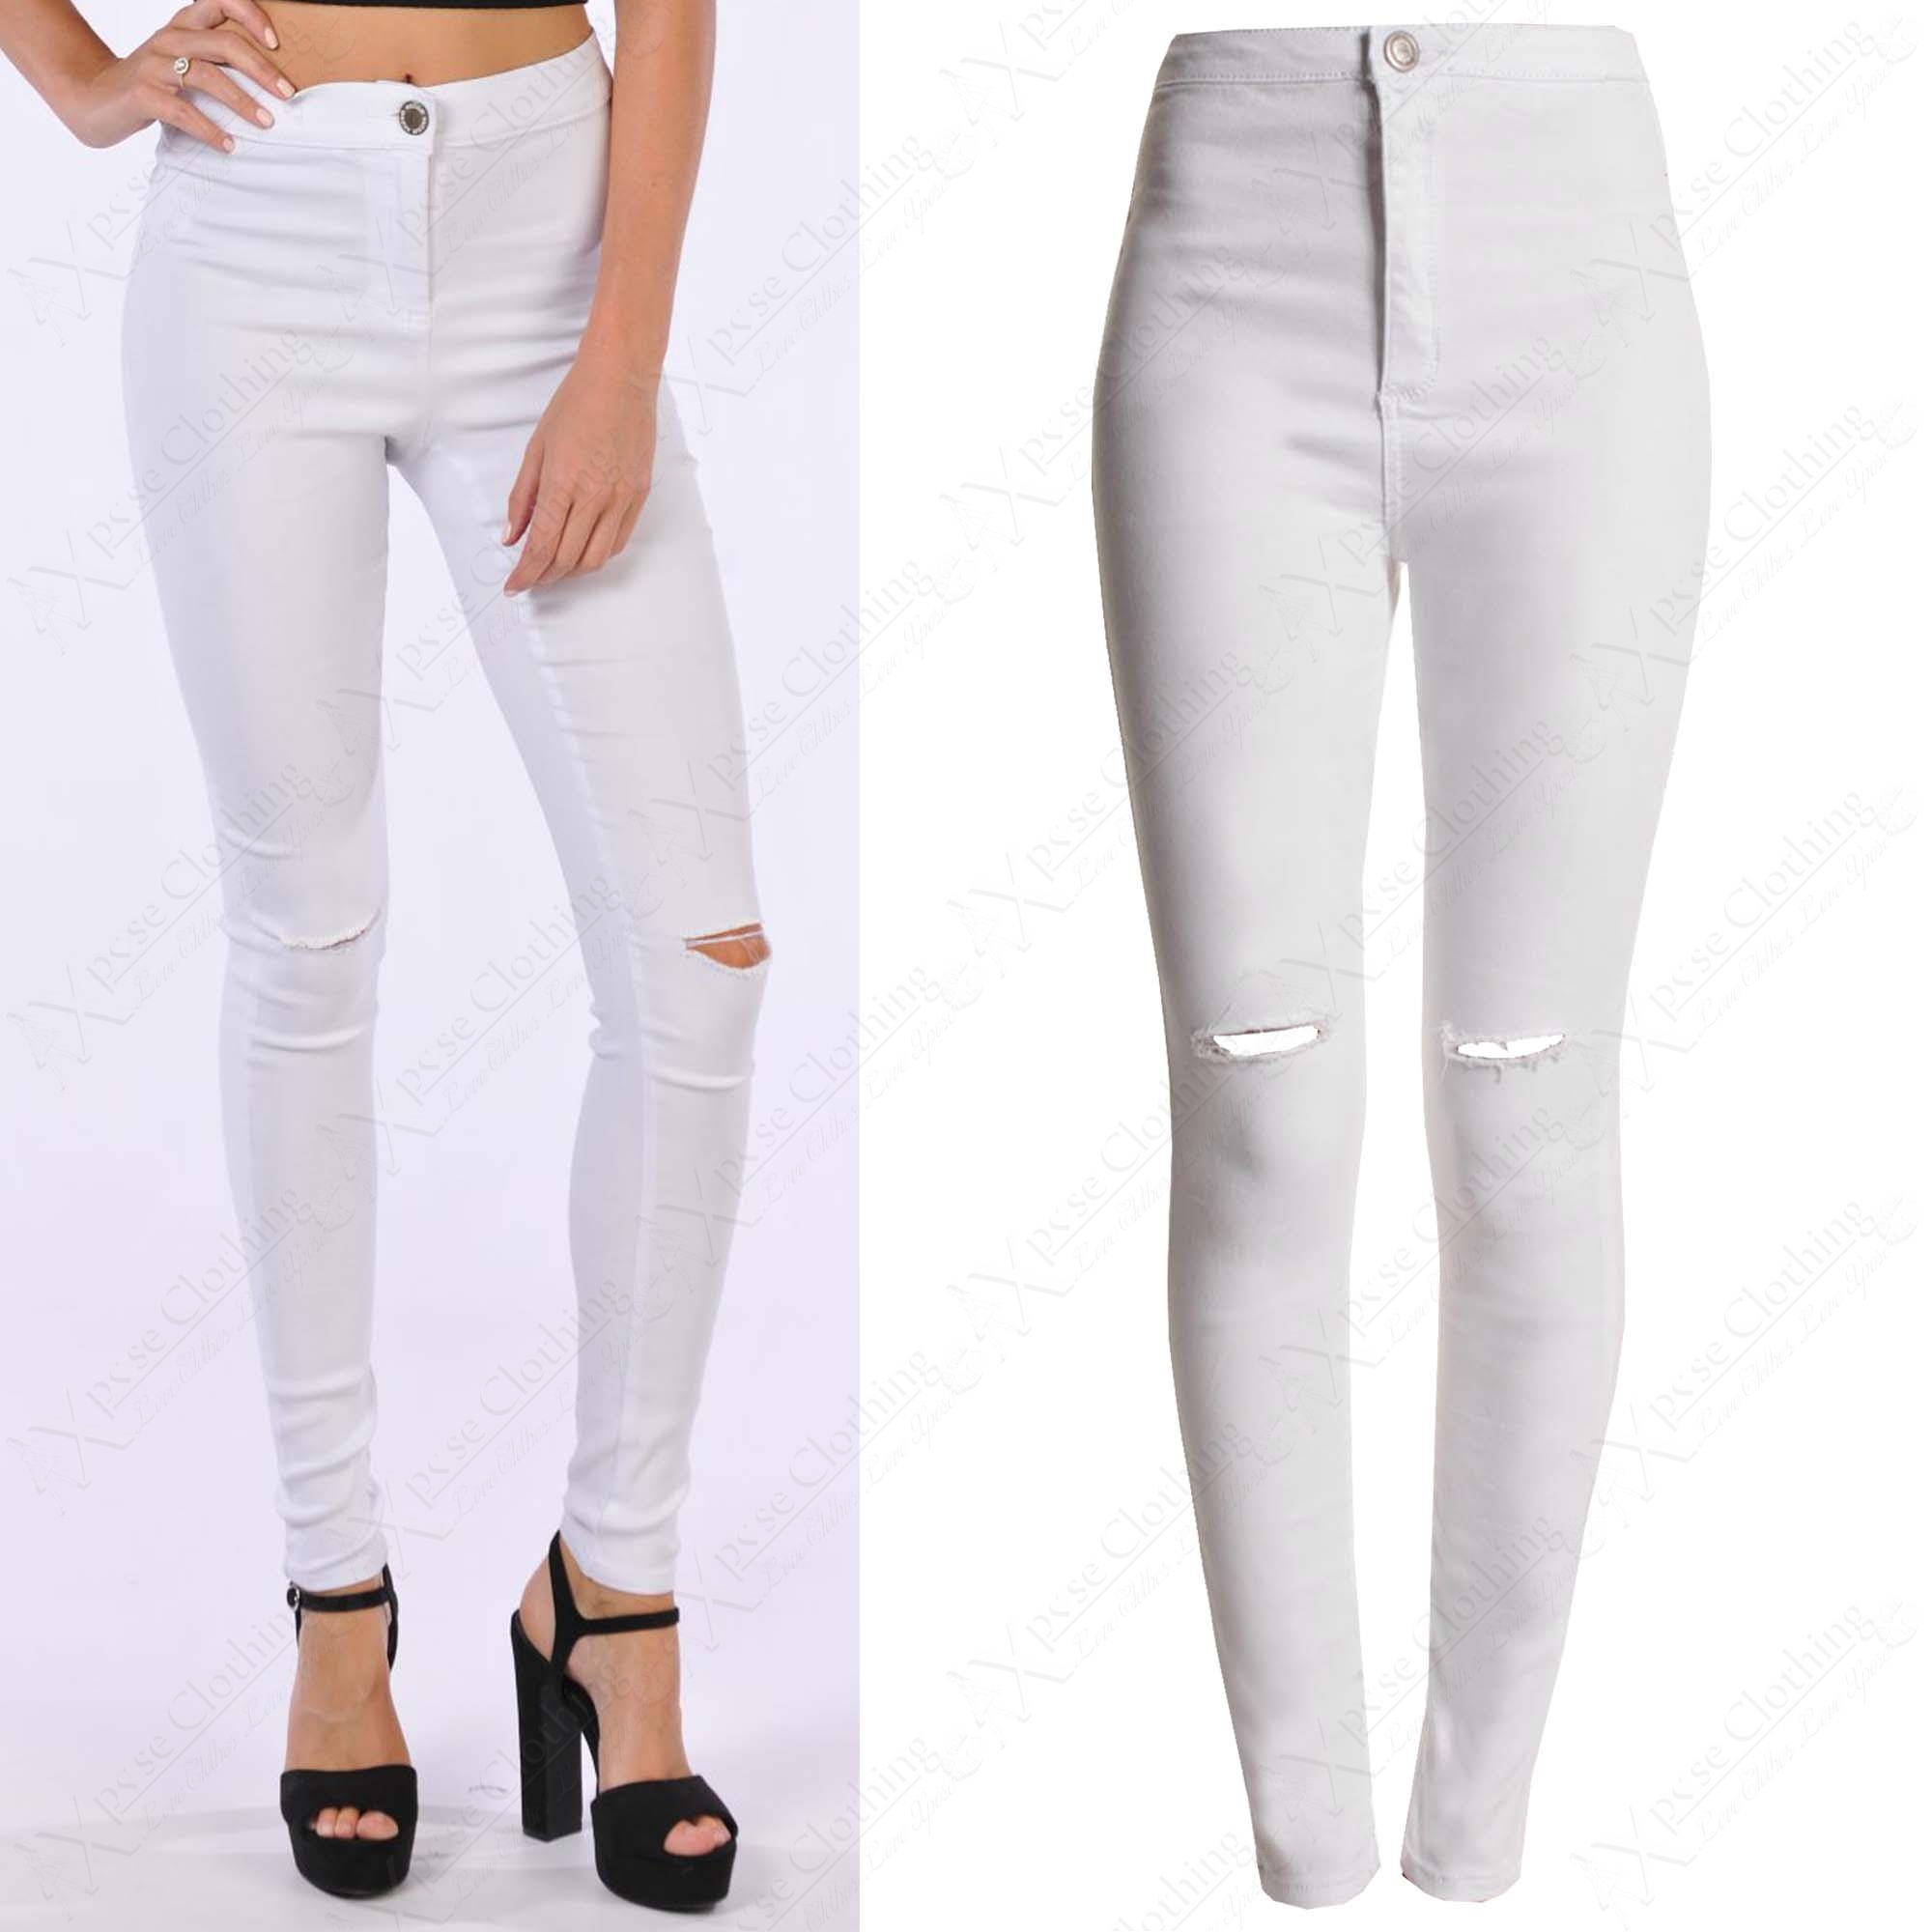 Collection White Skinny Jeans Womens Pictures - Reikian